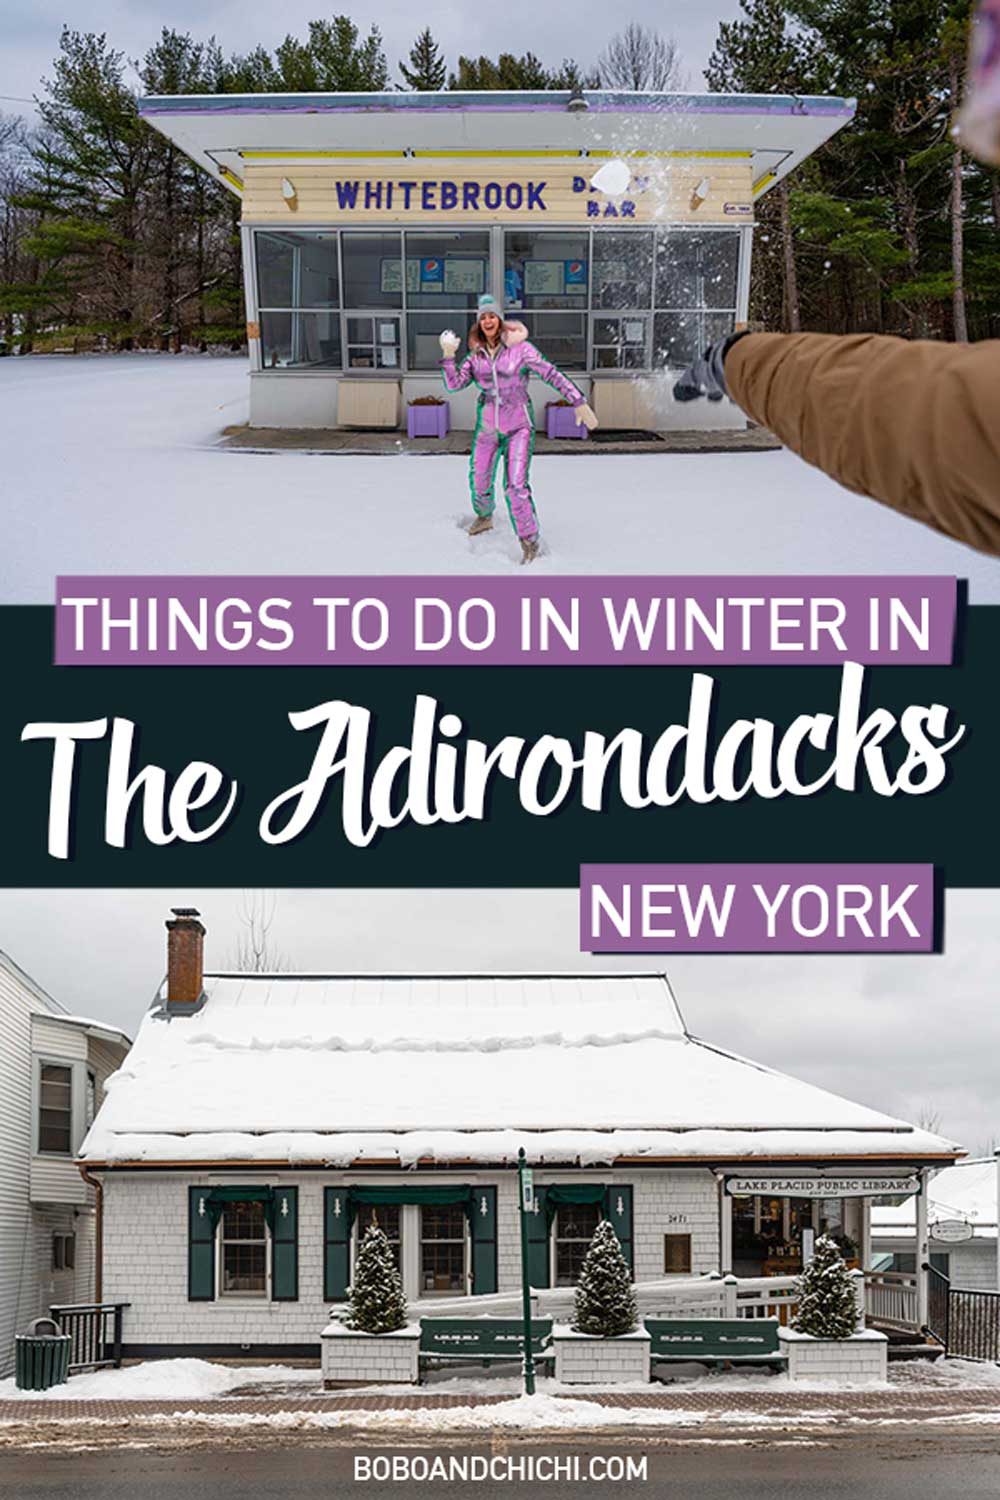 things-to-do-in-the-adirondacks-in-winter